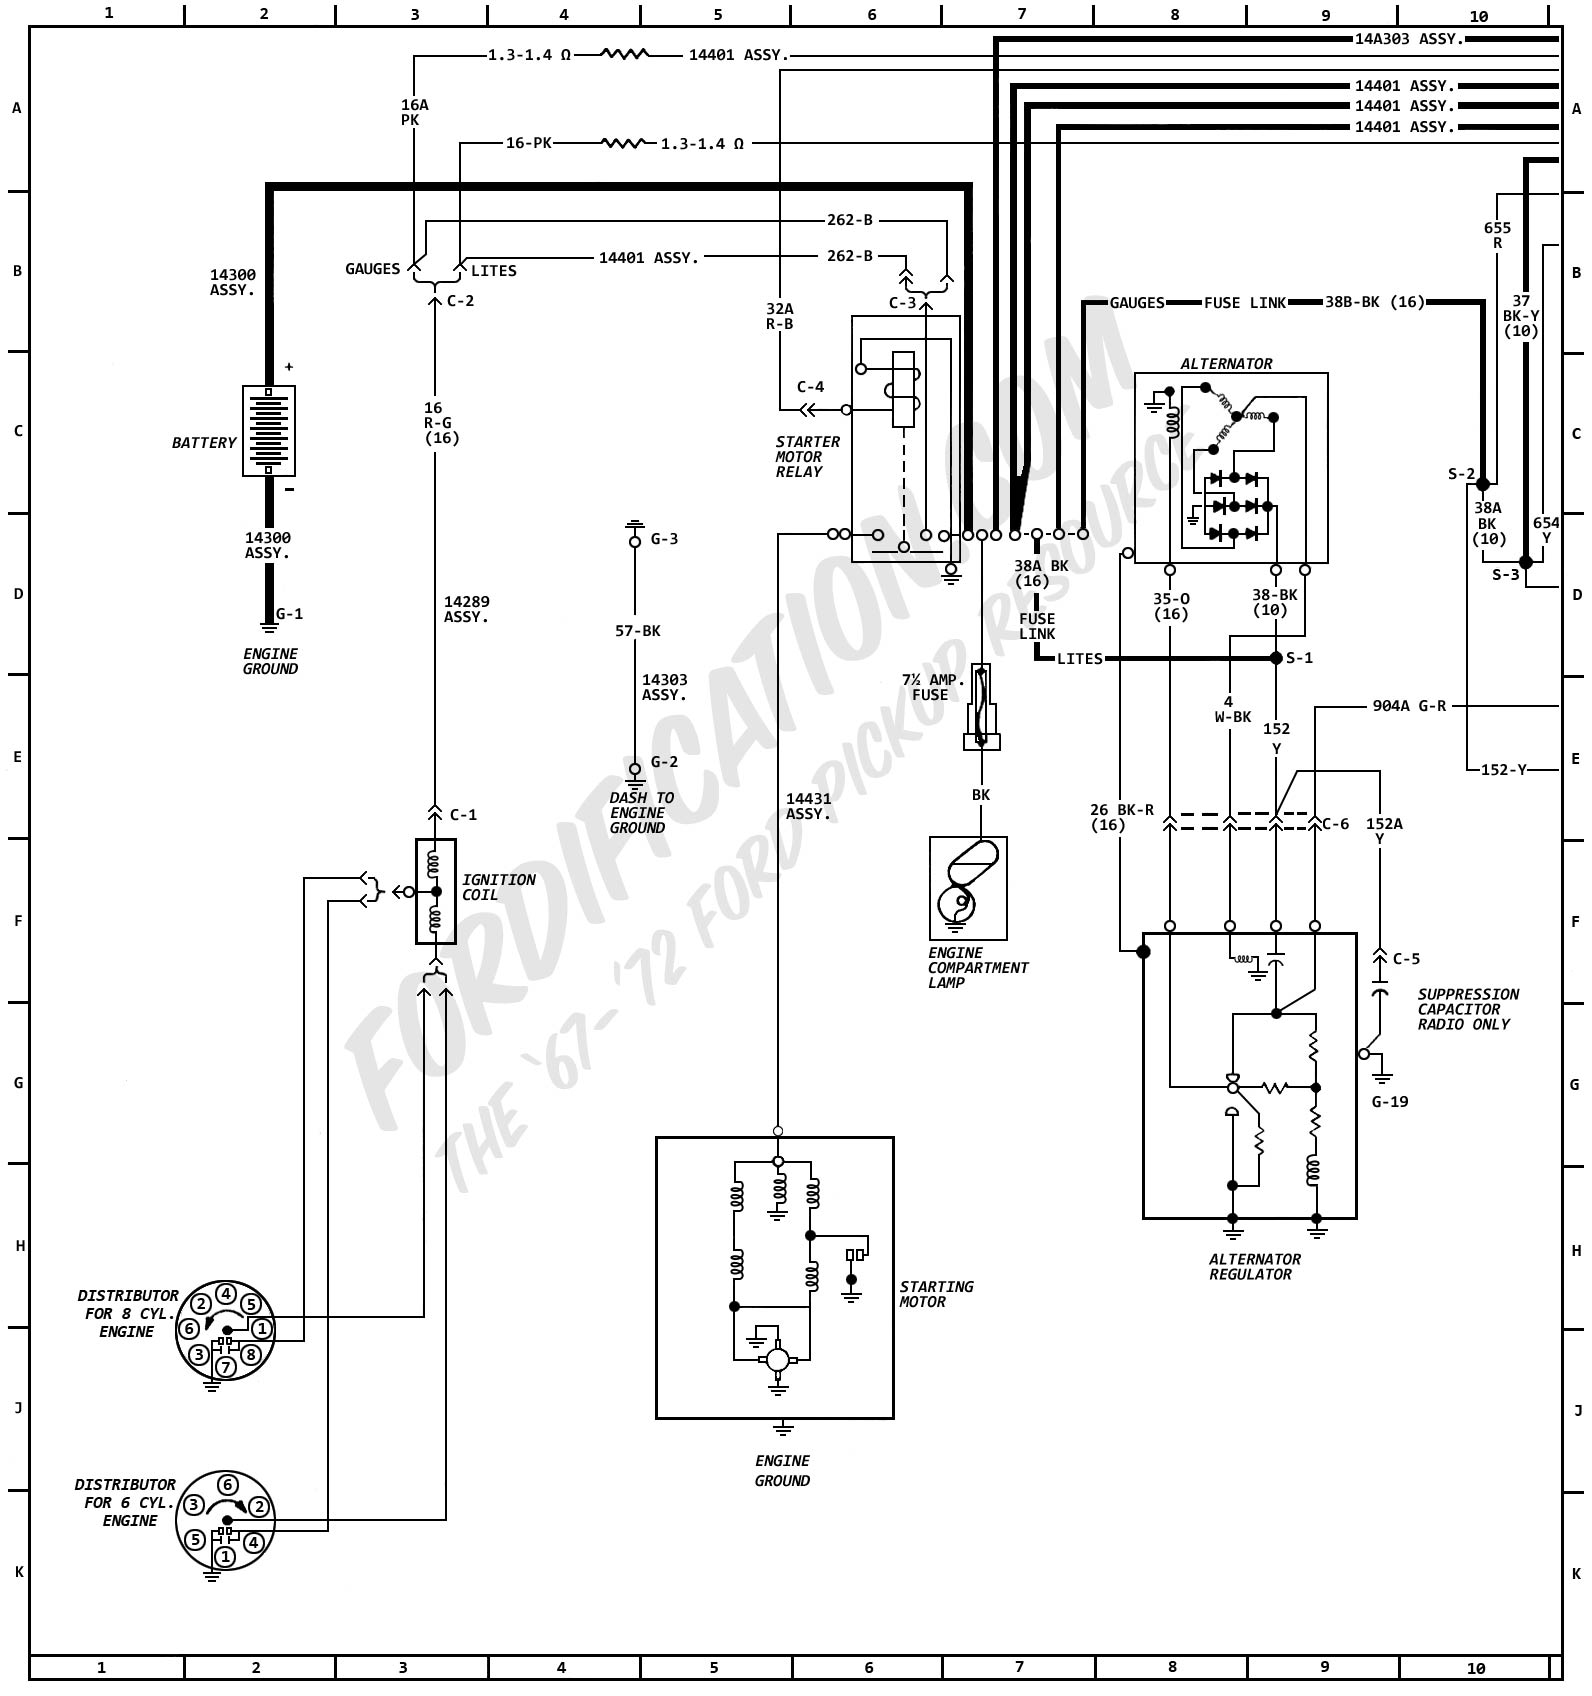 1972MasterWiring_01 1972 ford truck wiring diagrams fordification com f100 wiring diagram at virtualis.co